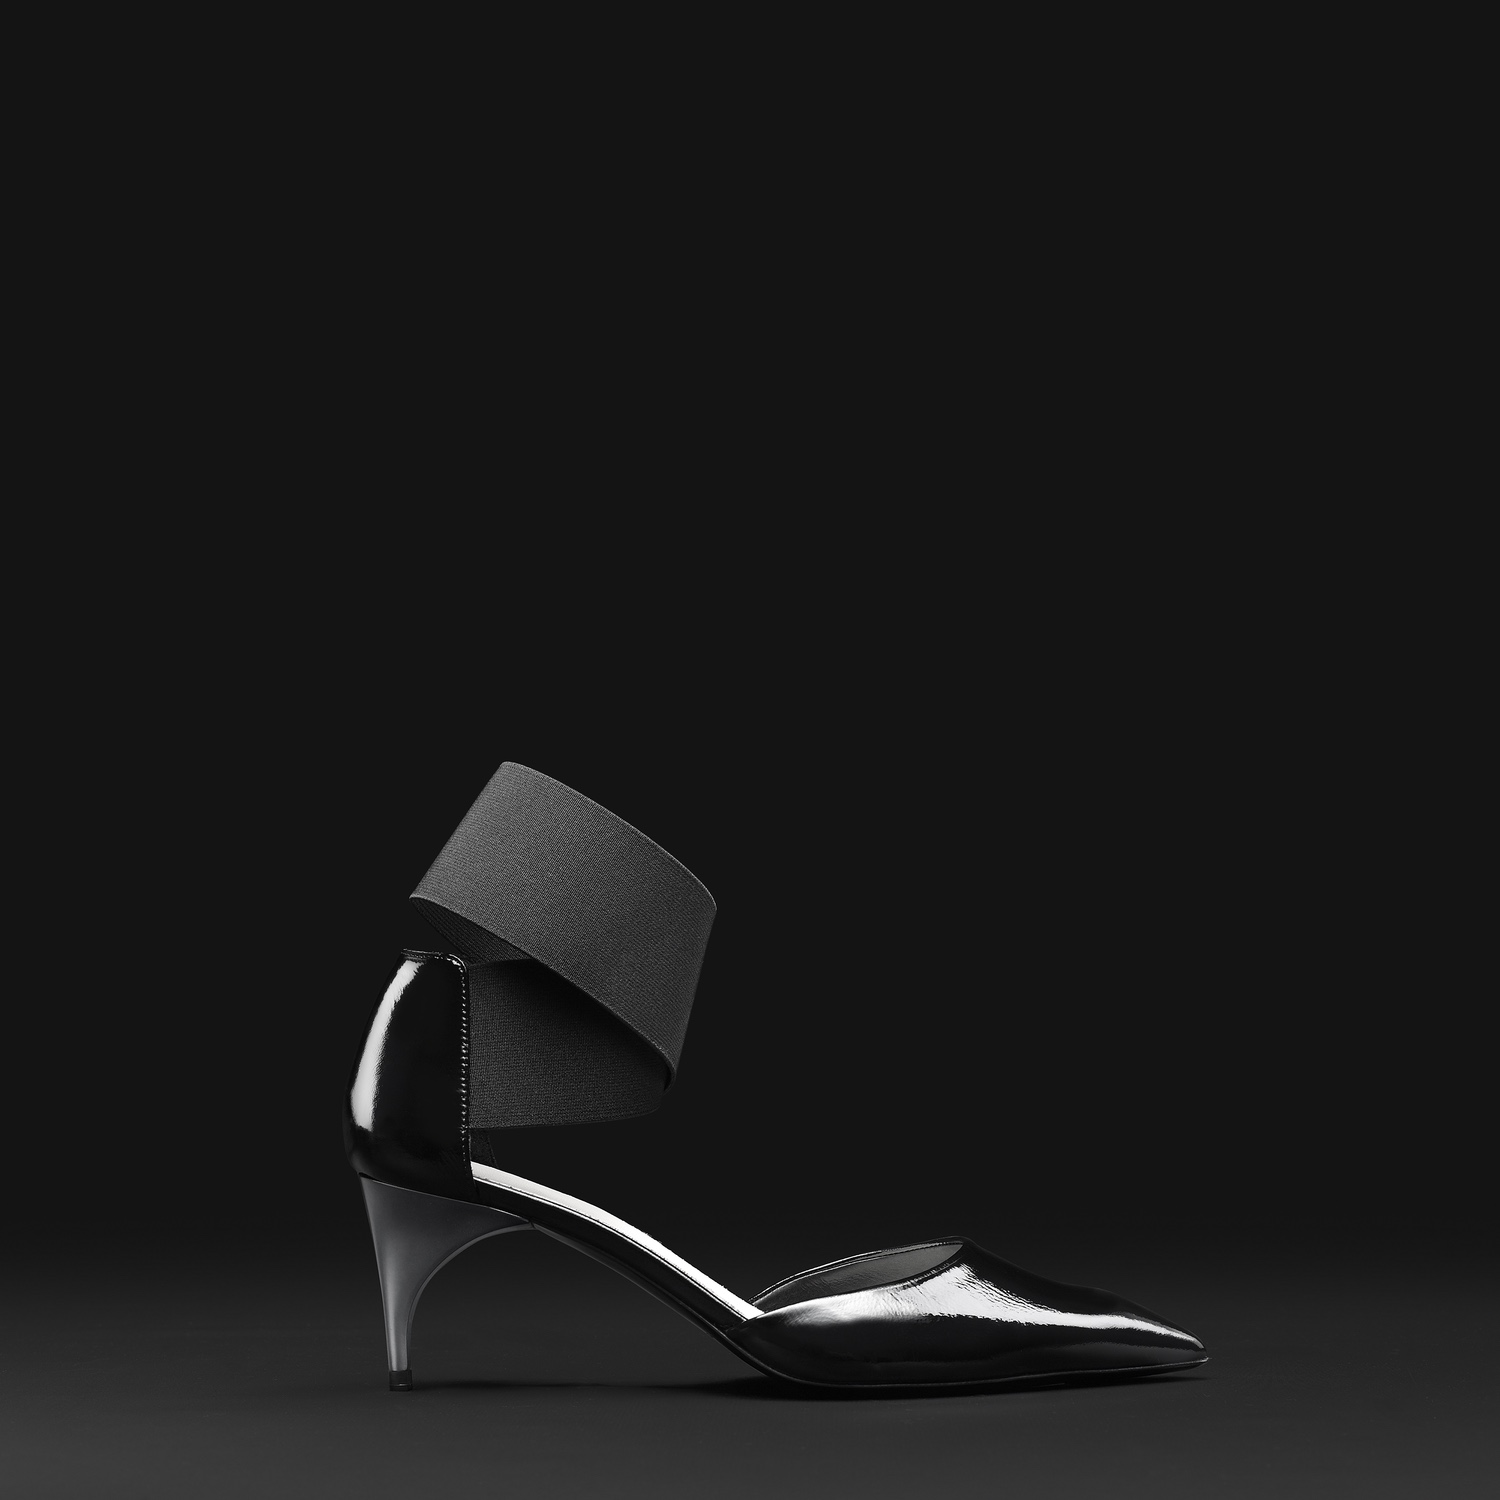 ALAINTONDOWSKI_FALLWINTER2015_SHOES_AT0040-b